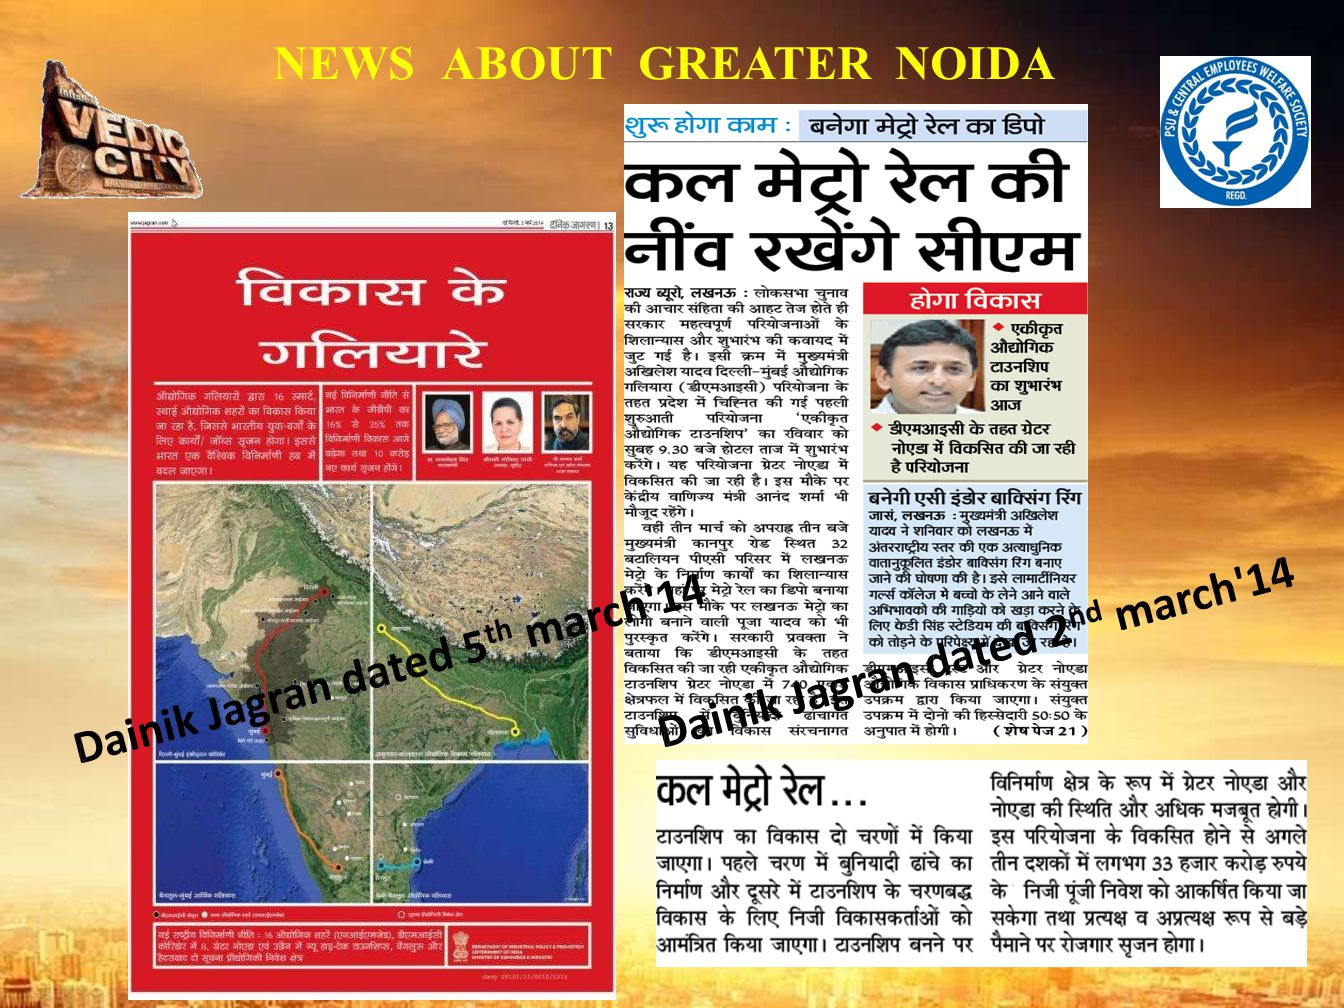 NEWS ABOUT GREATER NOIDA